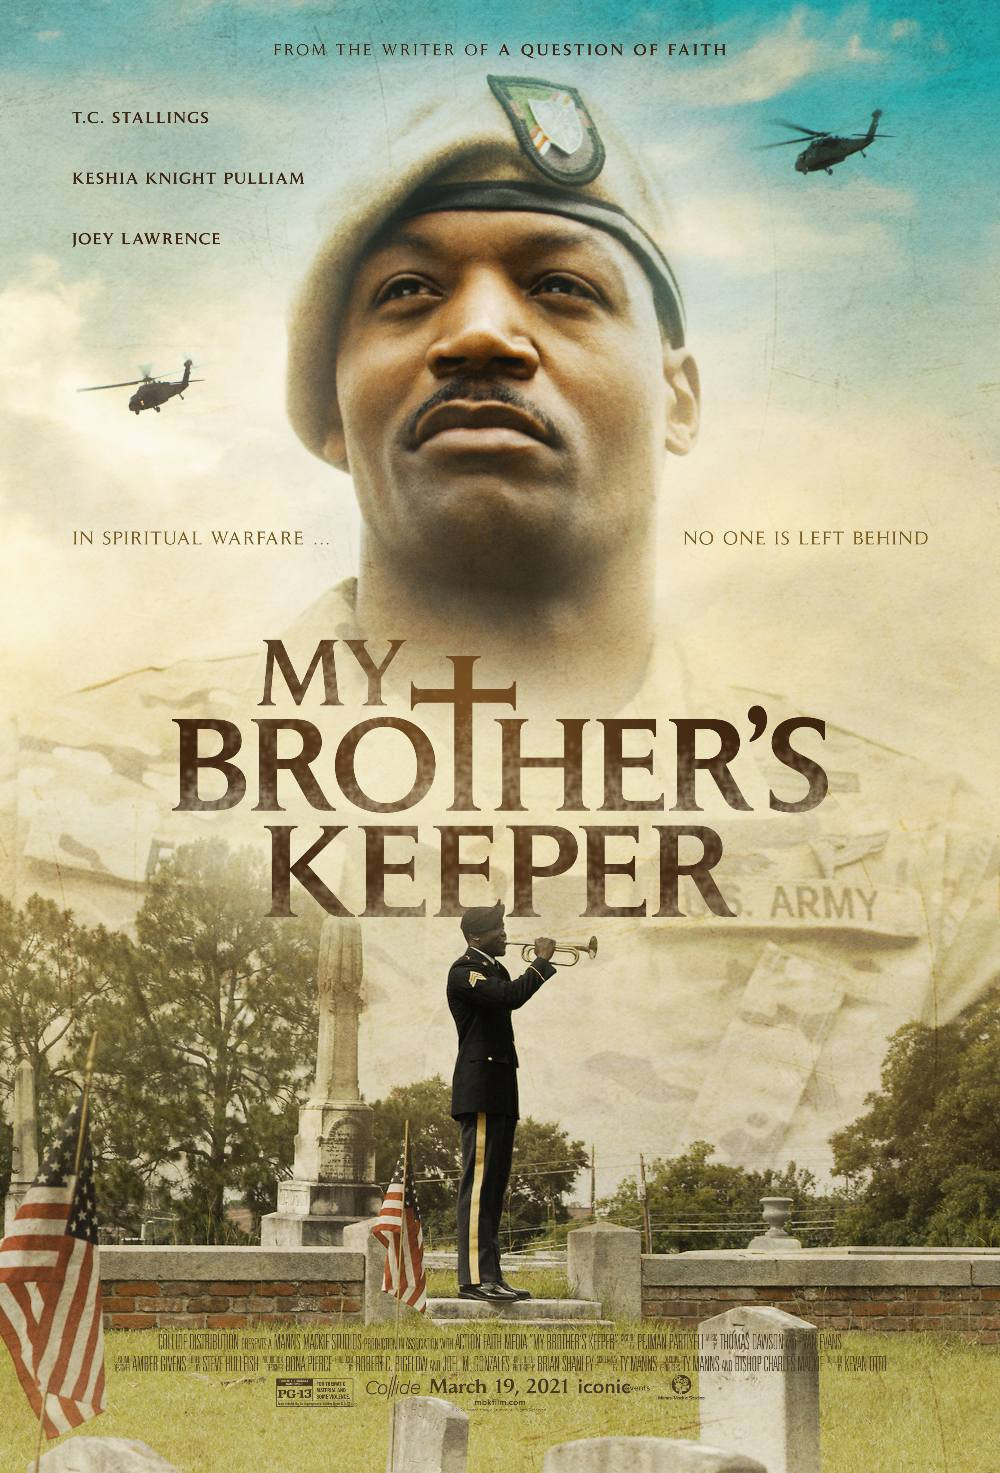 18+ My Brothers Keeper 2021 English 720p HDRip ESub 850MB x264 AAC